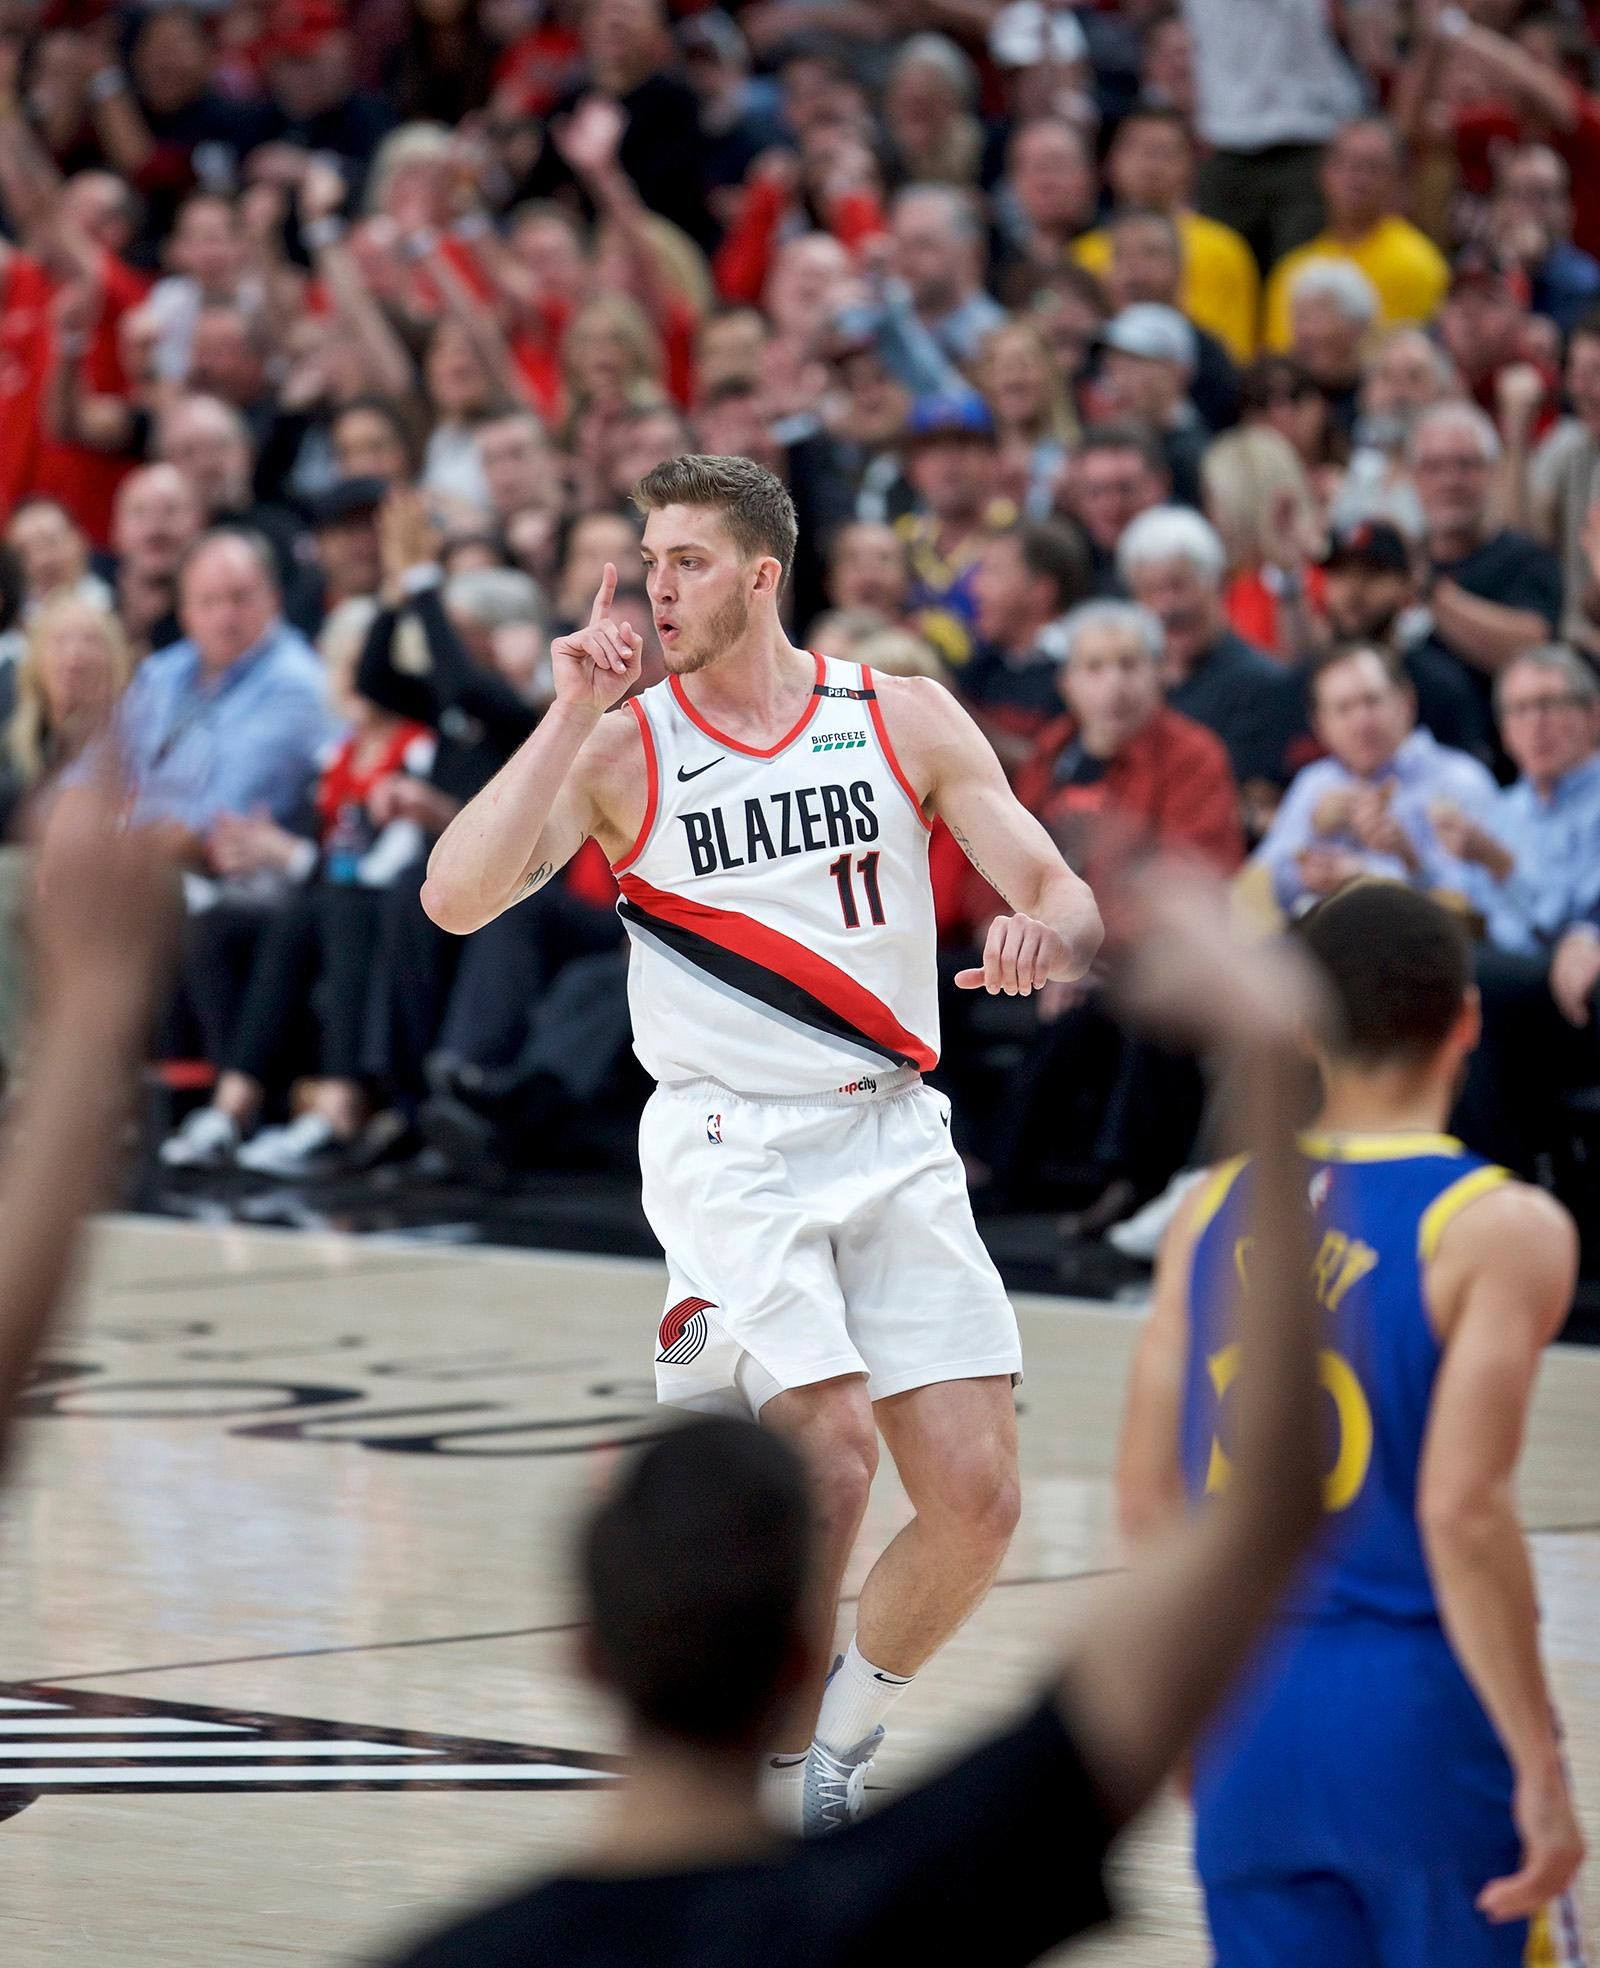 Portland Trail Blazers forward Meyers Leonard reacts after making a three-point basket against the Golden State Warriors during the first half of Game 3 of the NBA basketball playoffs Western Conference finals Saturday, May 18, 2019, in Portland, Ore. (AP Photo/Craig Mitchelldyer)